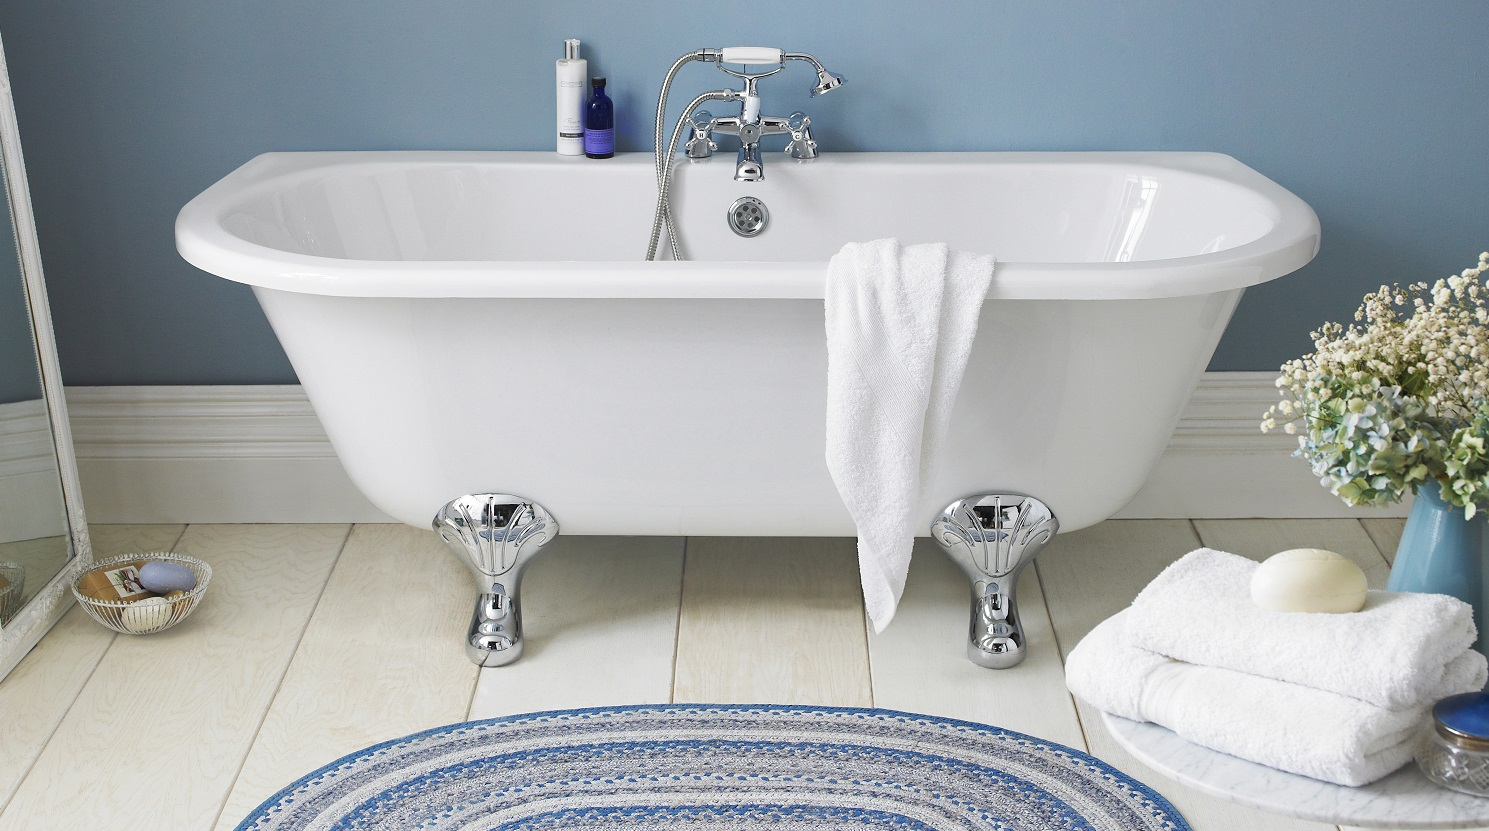 6 Ways to Makeover your Bathroom with Accessories